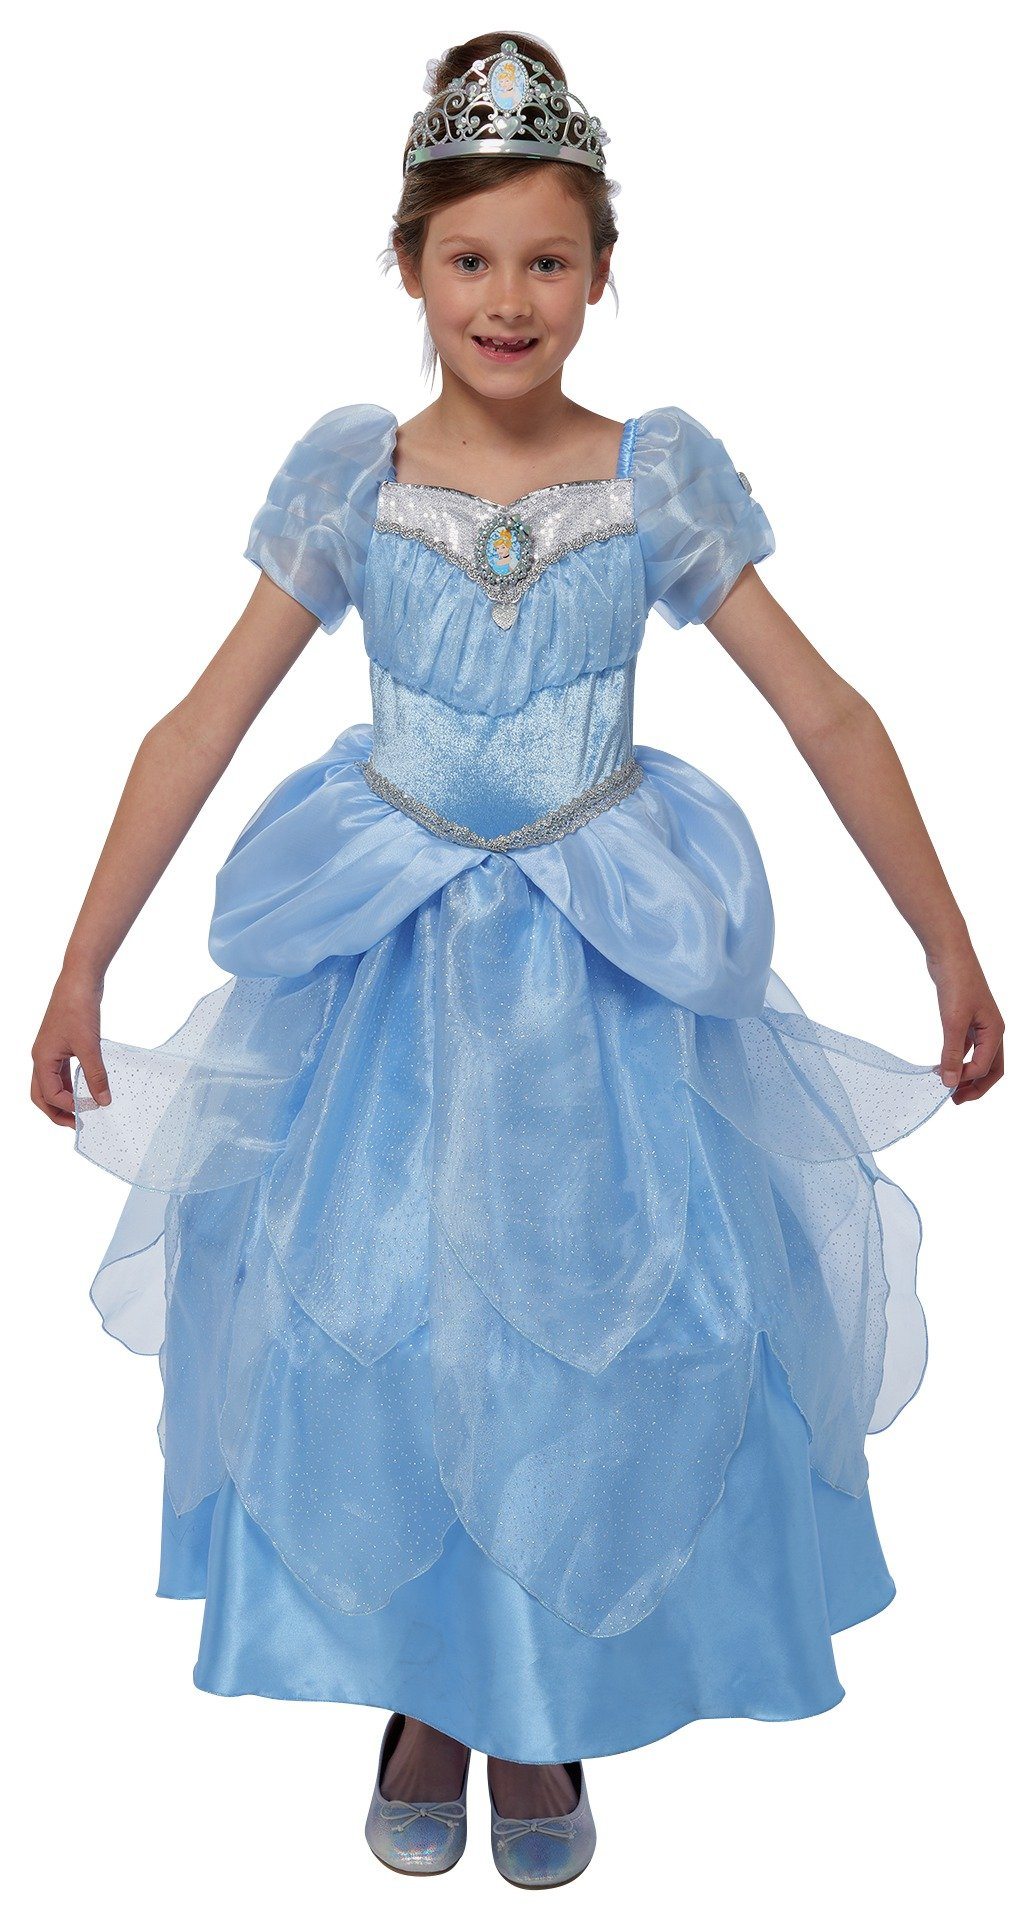 Disney Princess Cinderella Fancy Dress Costume - 5-6 Years